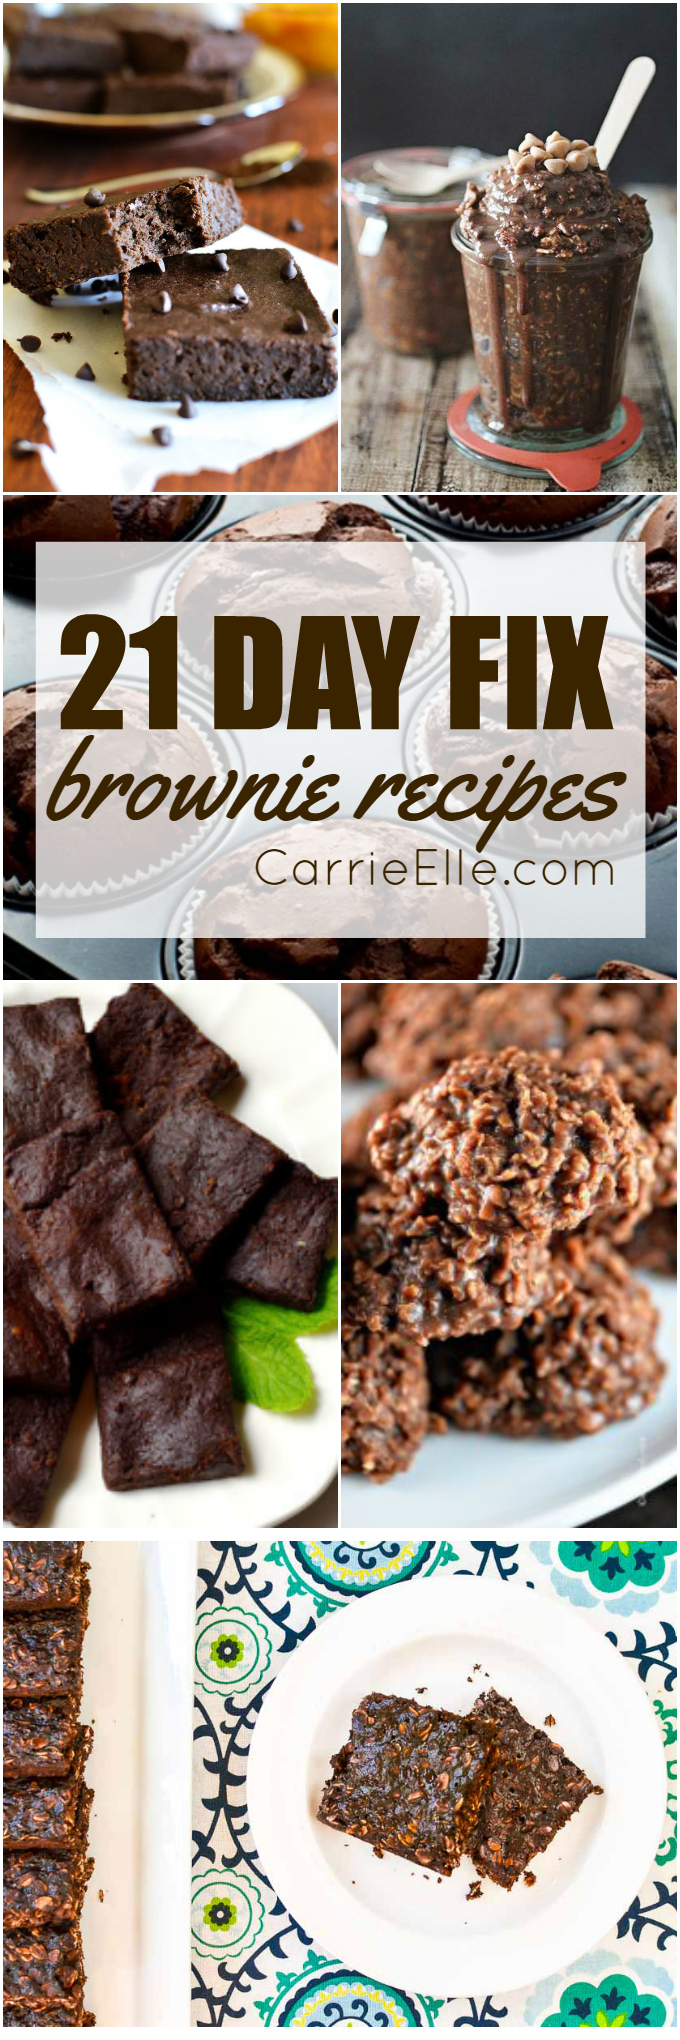 21 Day Fix Brownie Recipes